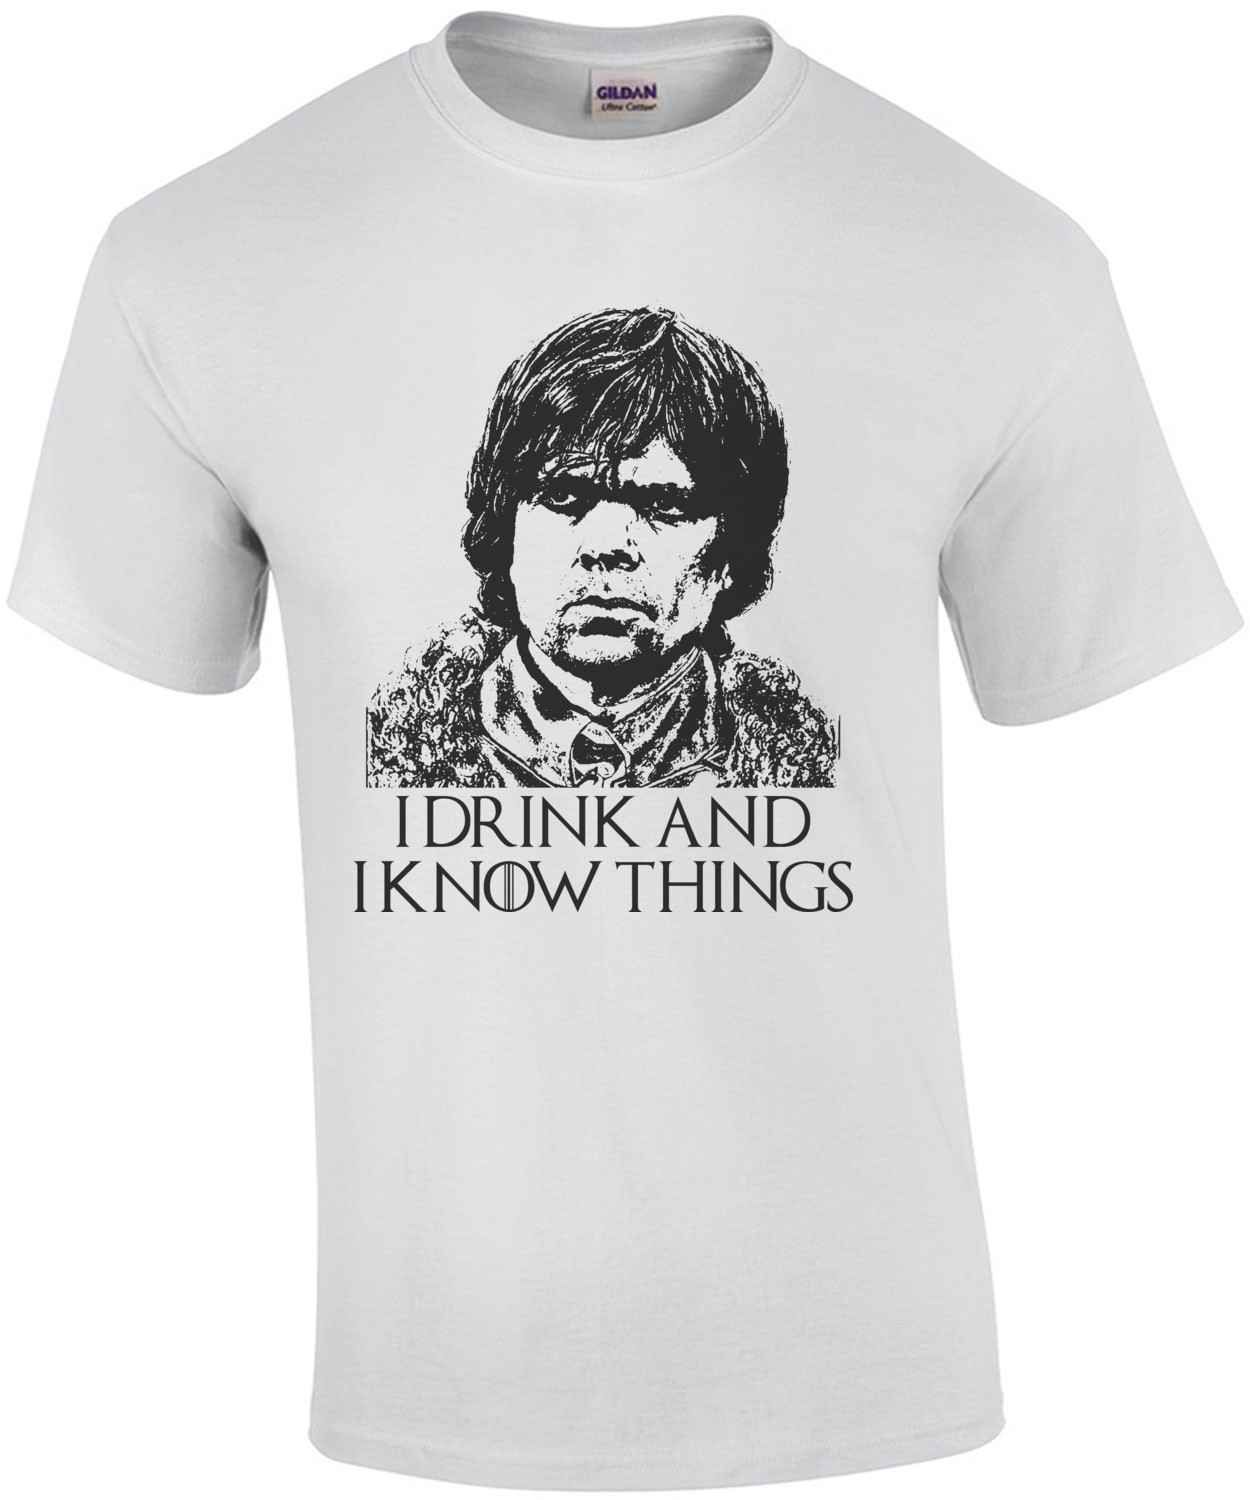 I Drink And I Know Things Tyrion Lannister Game of Thrones